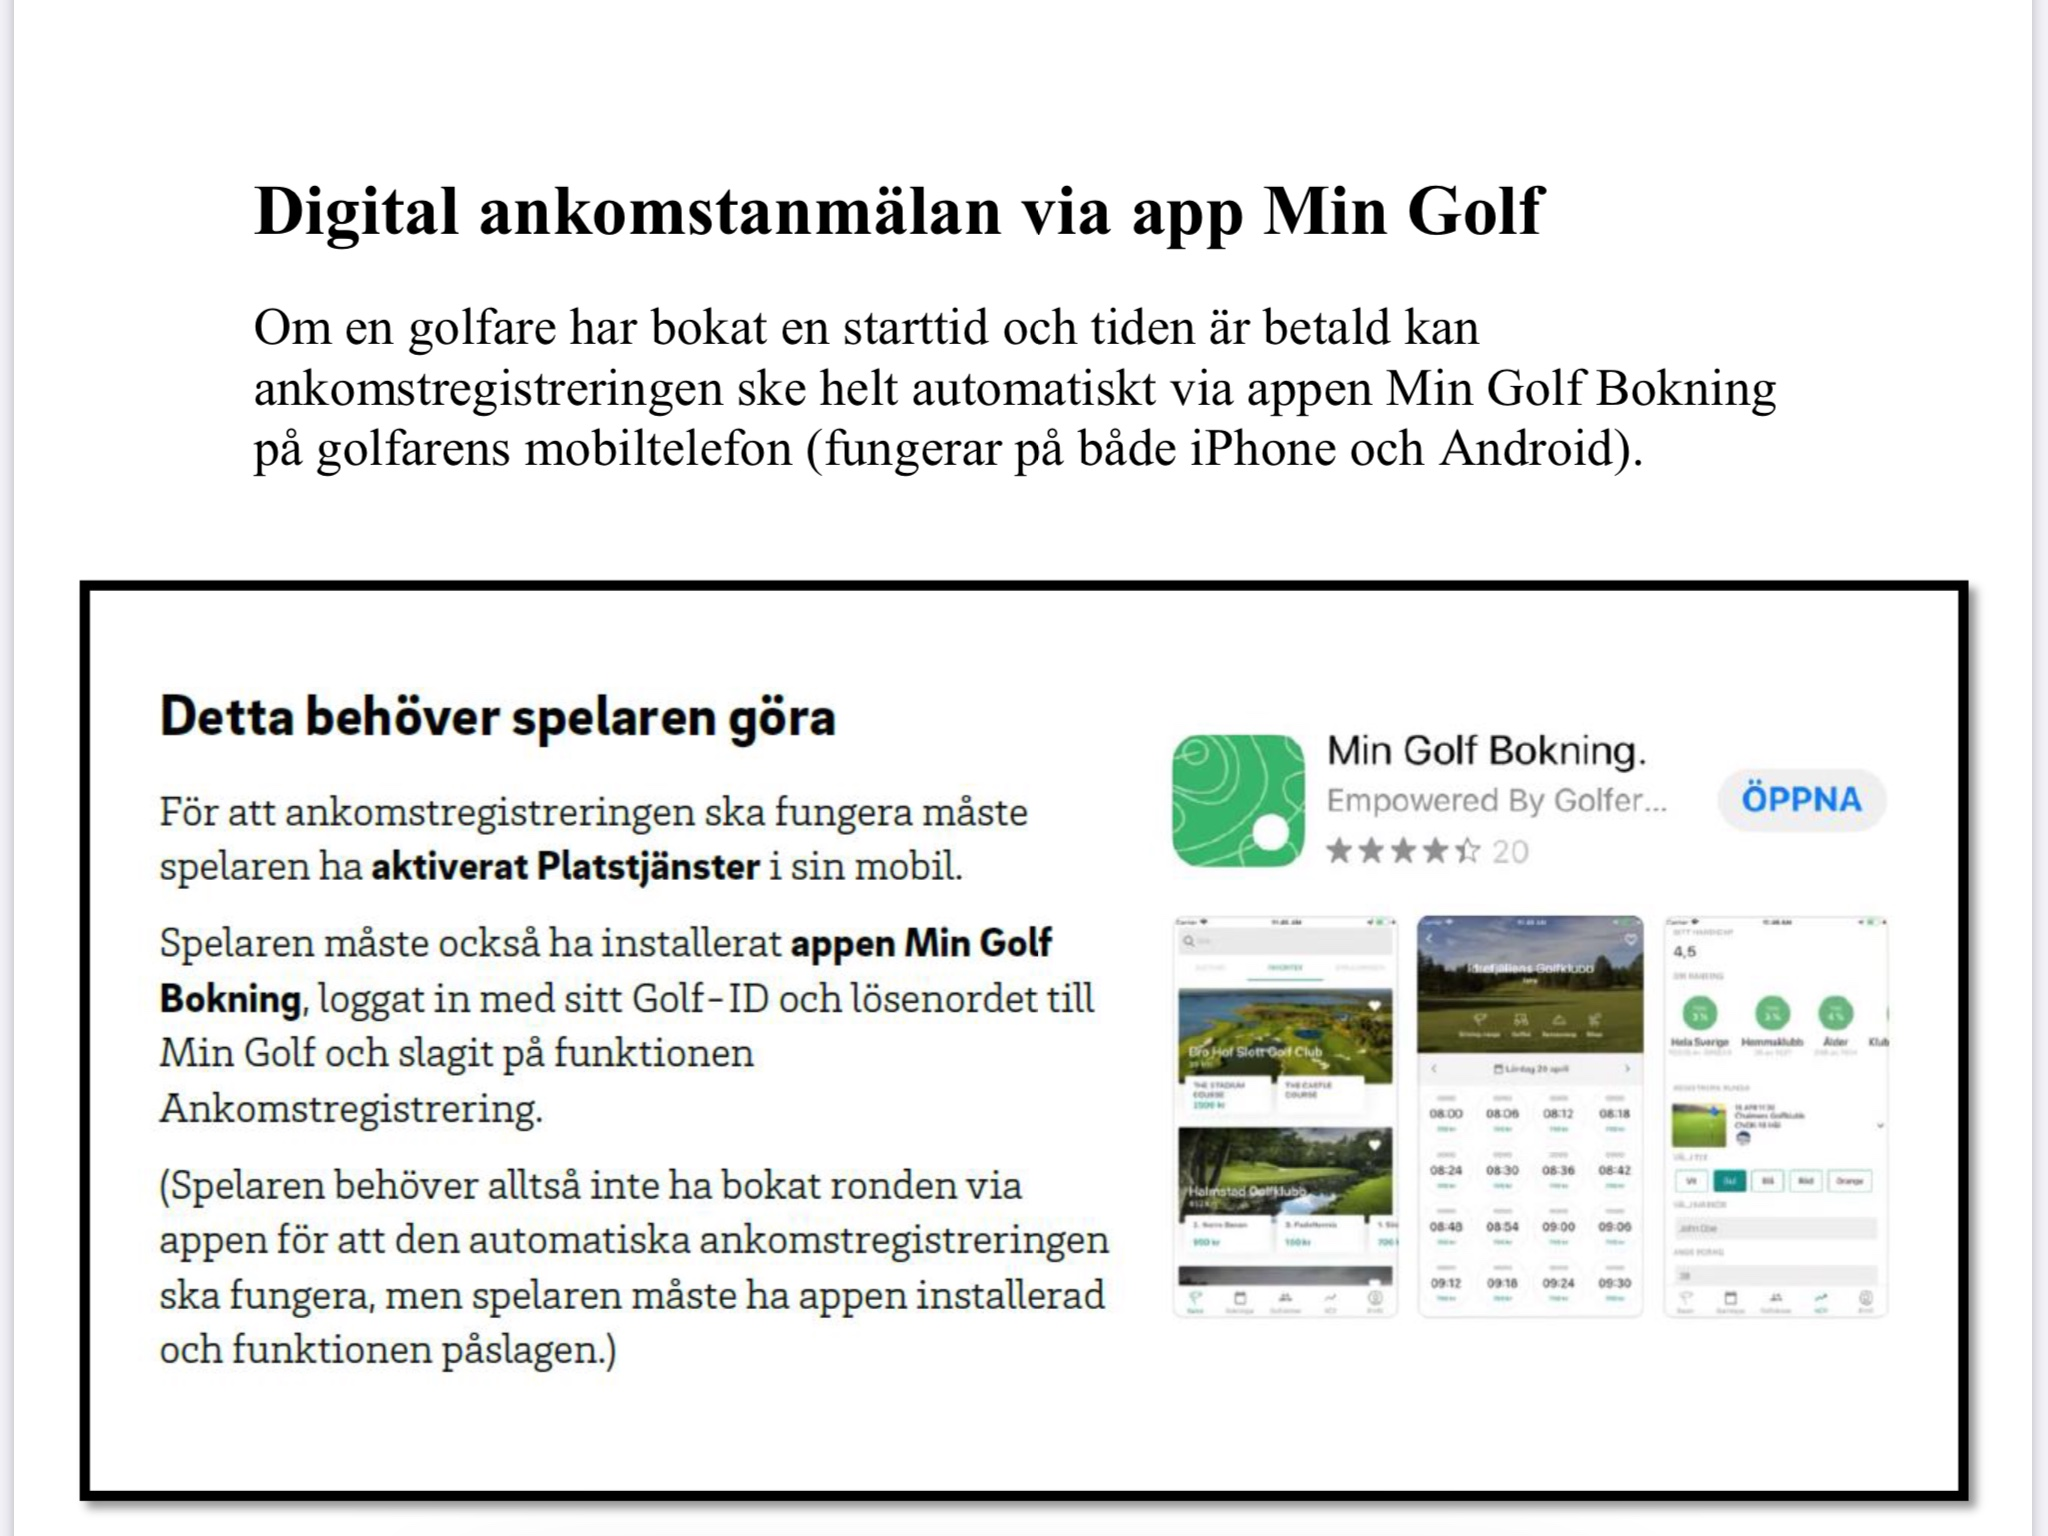 DigitalAnkomst